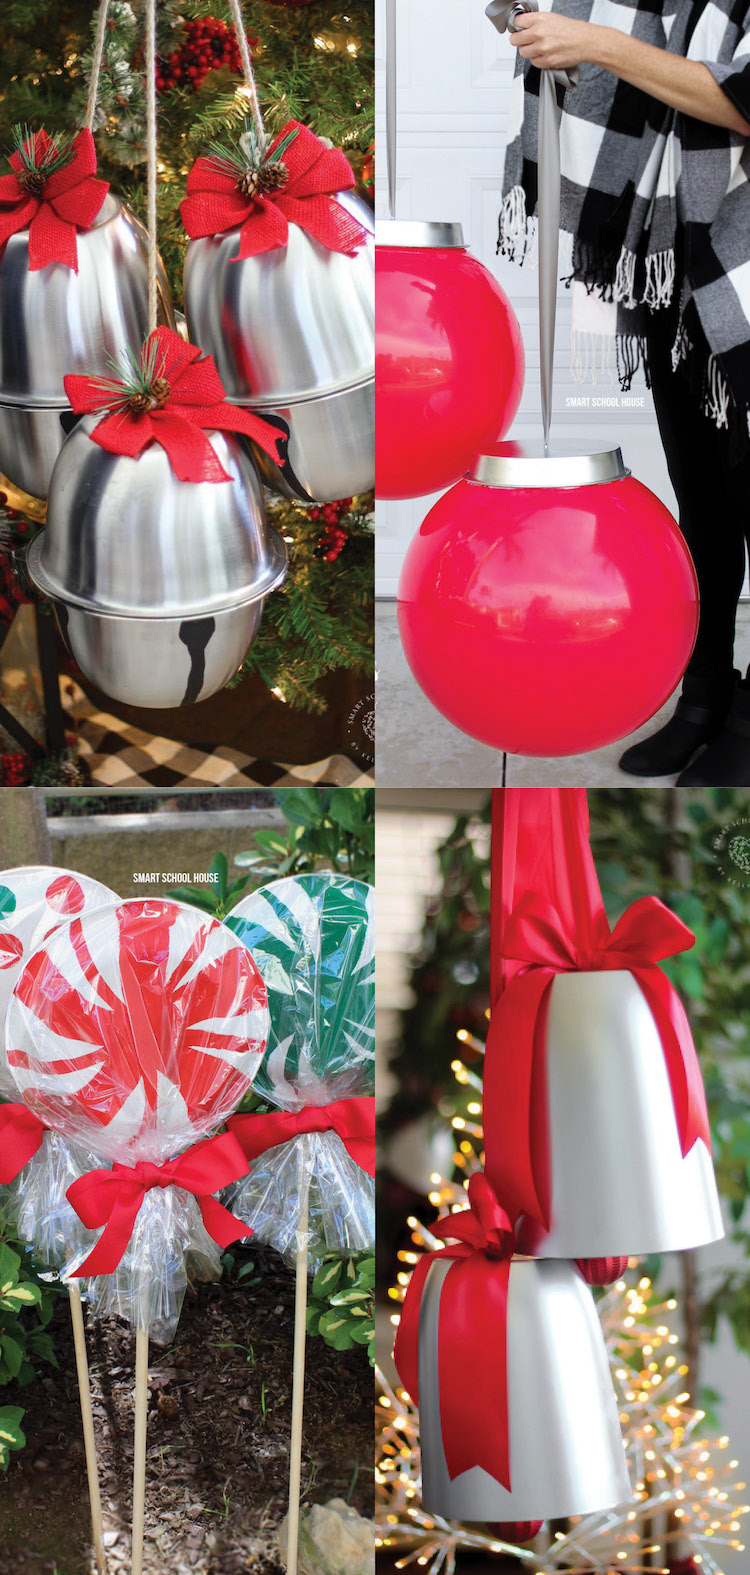 How to Make Giant Christmas Decorations for your home, classroom, or workplace!